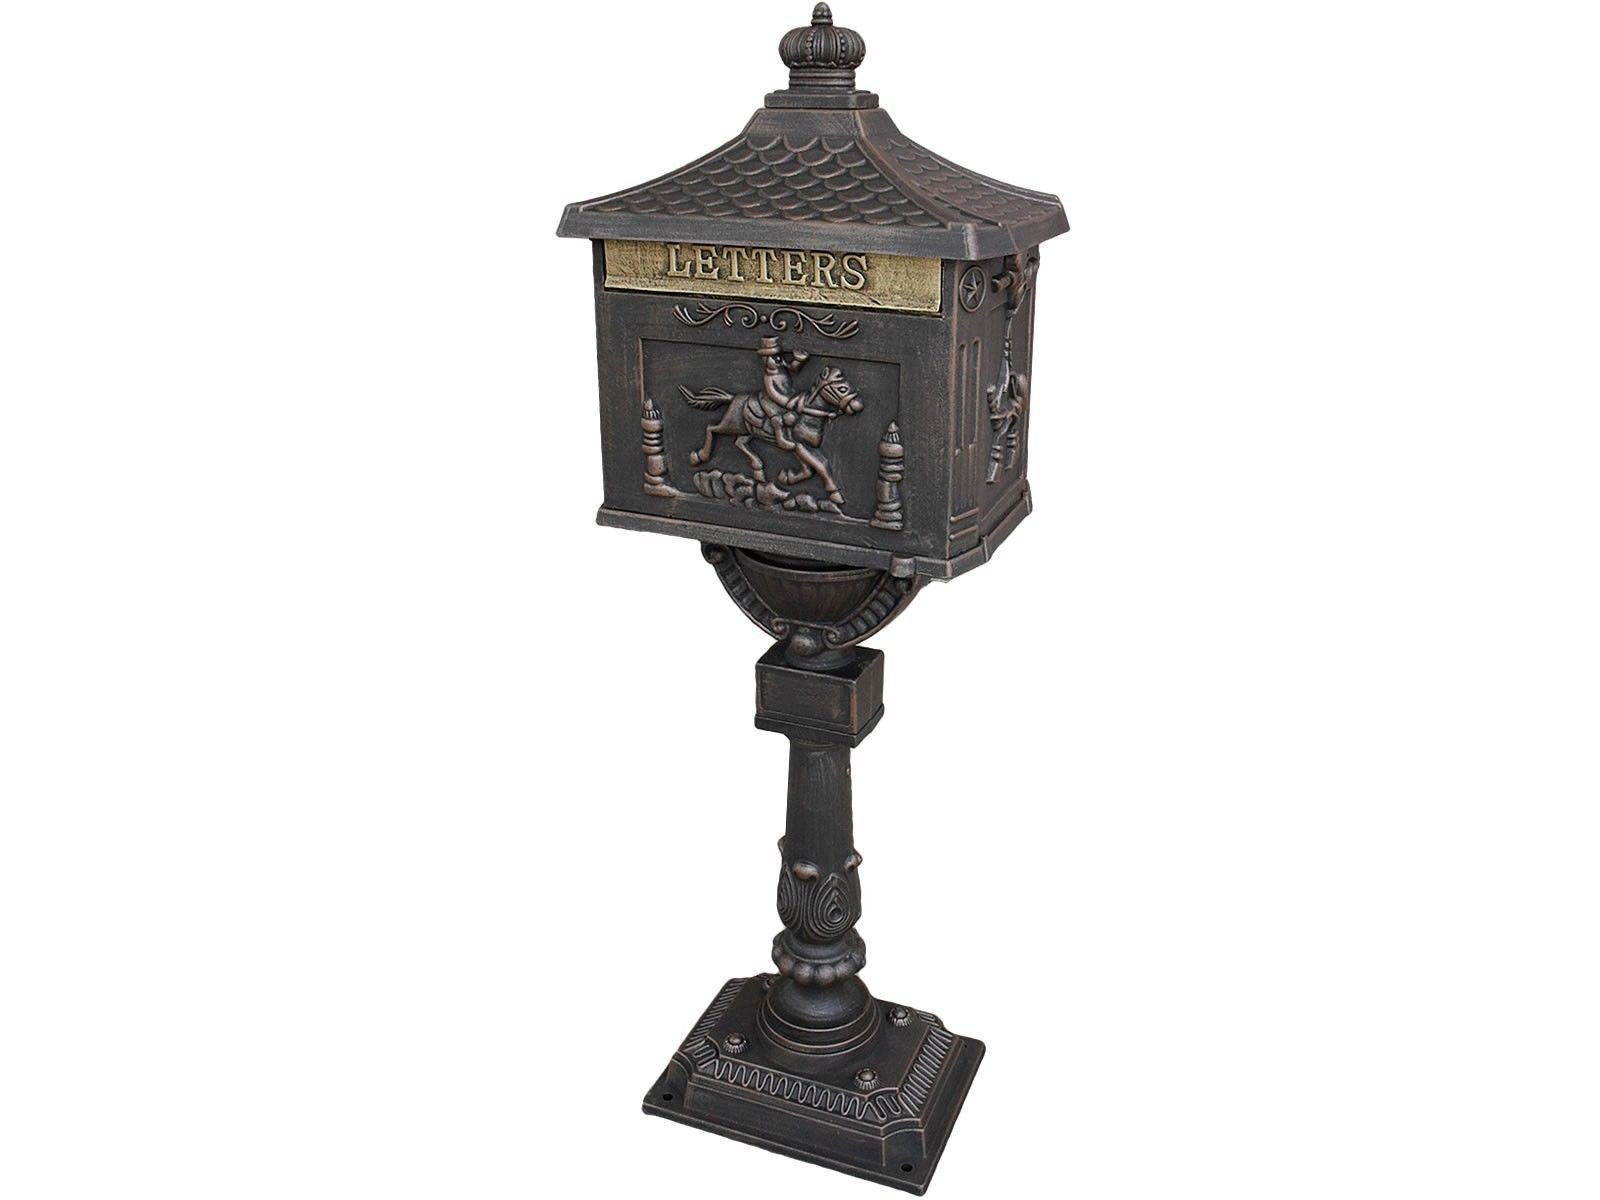 Mail Box Heavy Duty Mailbox Postal Box Security Cast Aluminum Vertical Pedestal (Bronze)